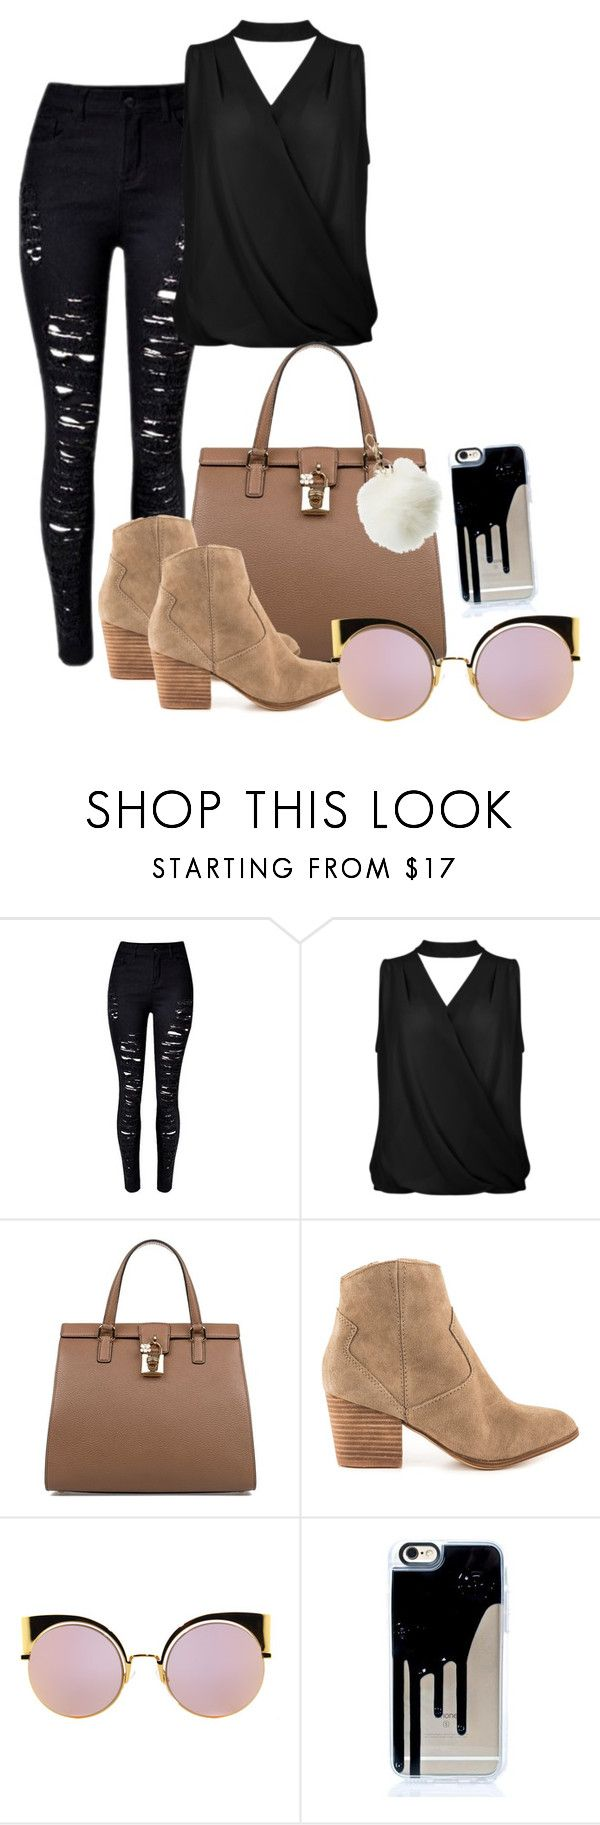 """City"" by grraciie-386 on Polyvore featuring Dolce&Gabbana, ALDO, Fendi and Charlotte Russe"